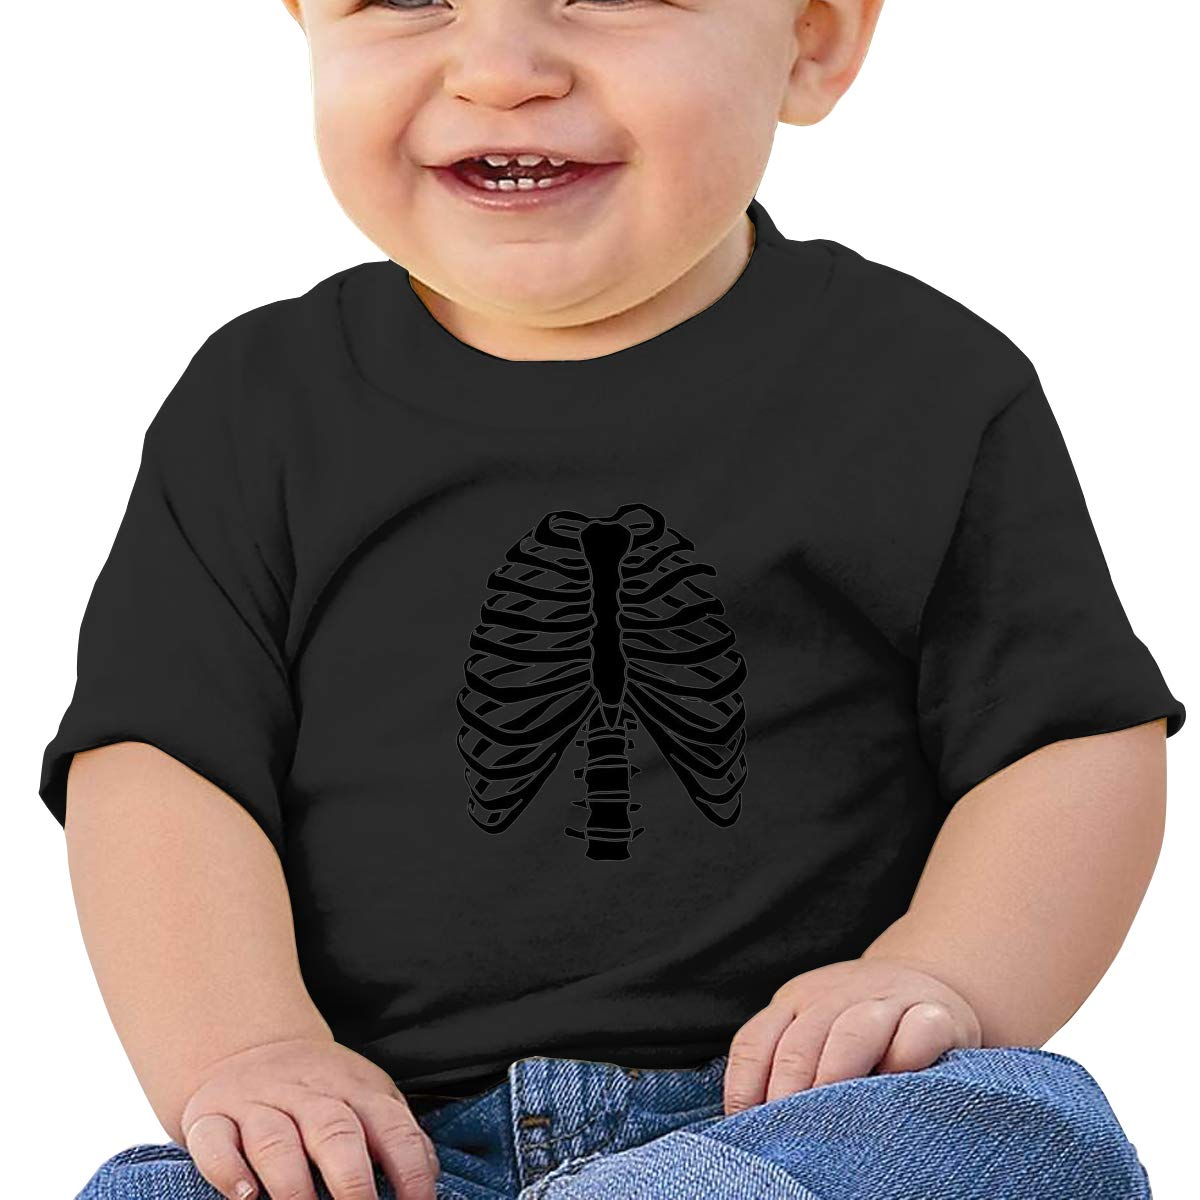 Skeleton Rib Toddler Short-Sleeve Tee for Boy Girl Infant Kids T-Shirt On Newborn 6-18 Months